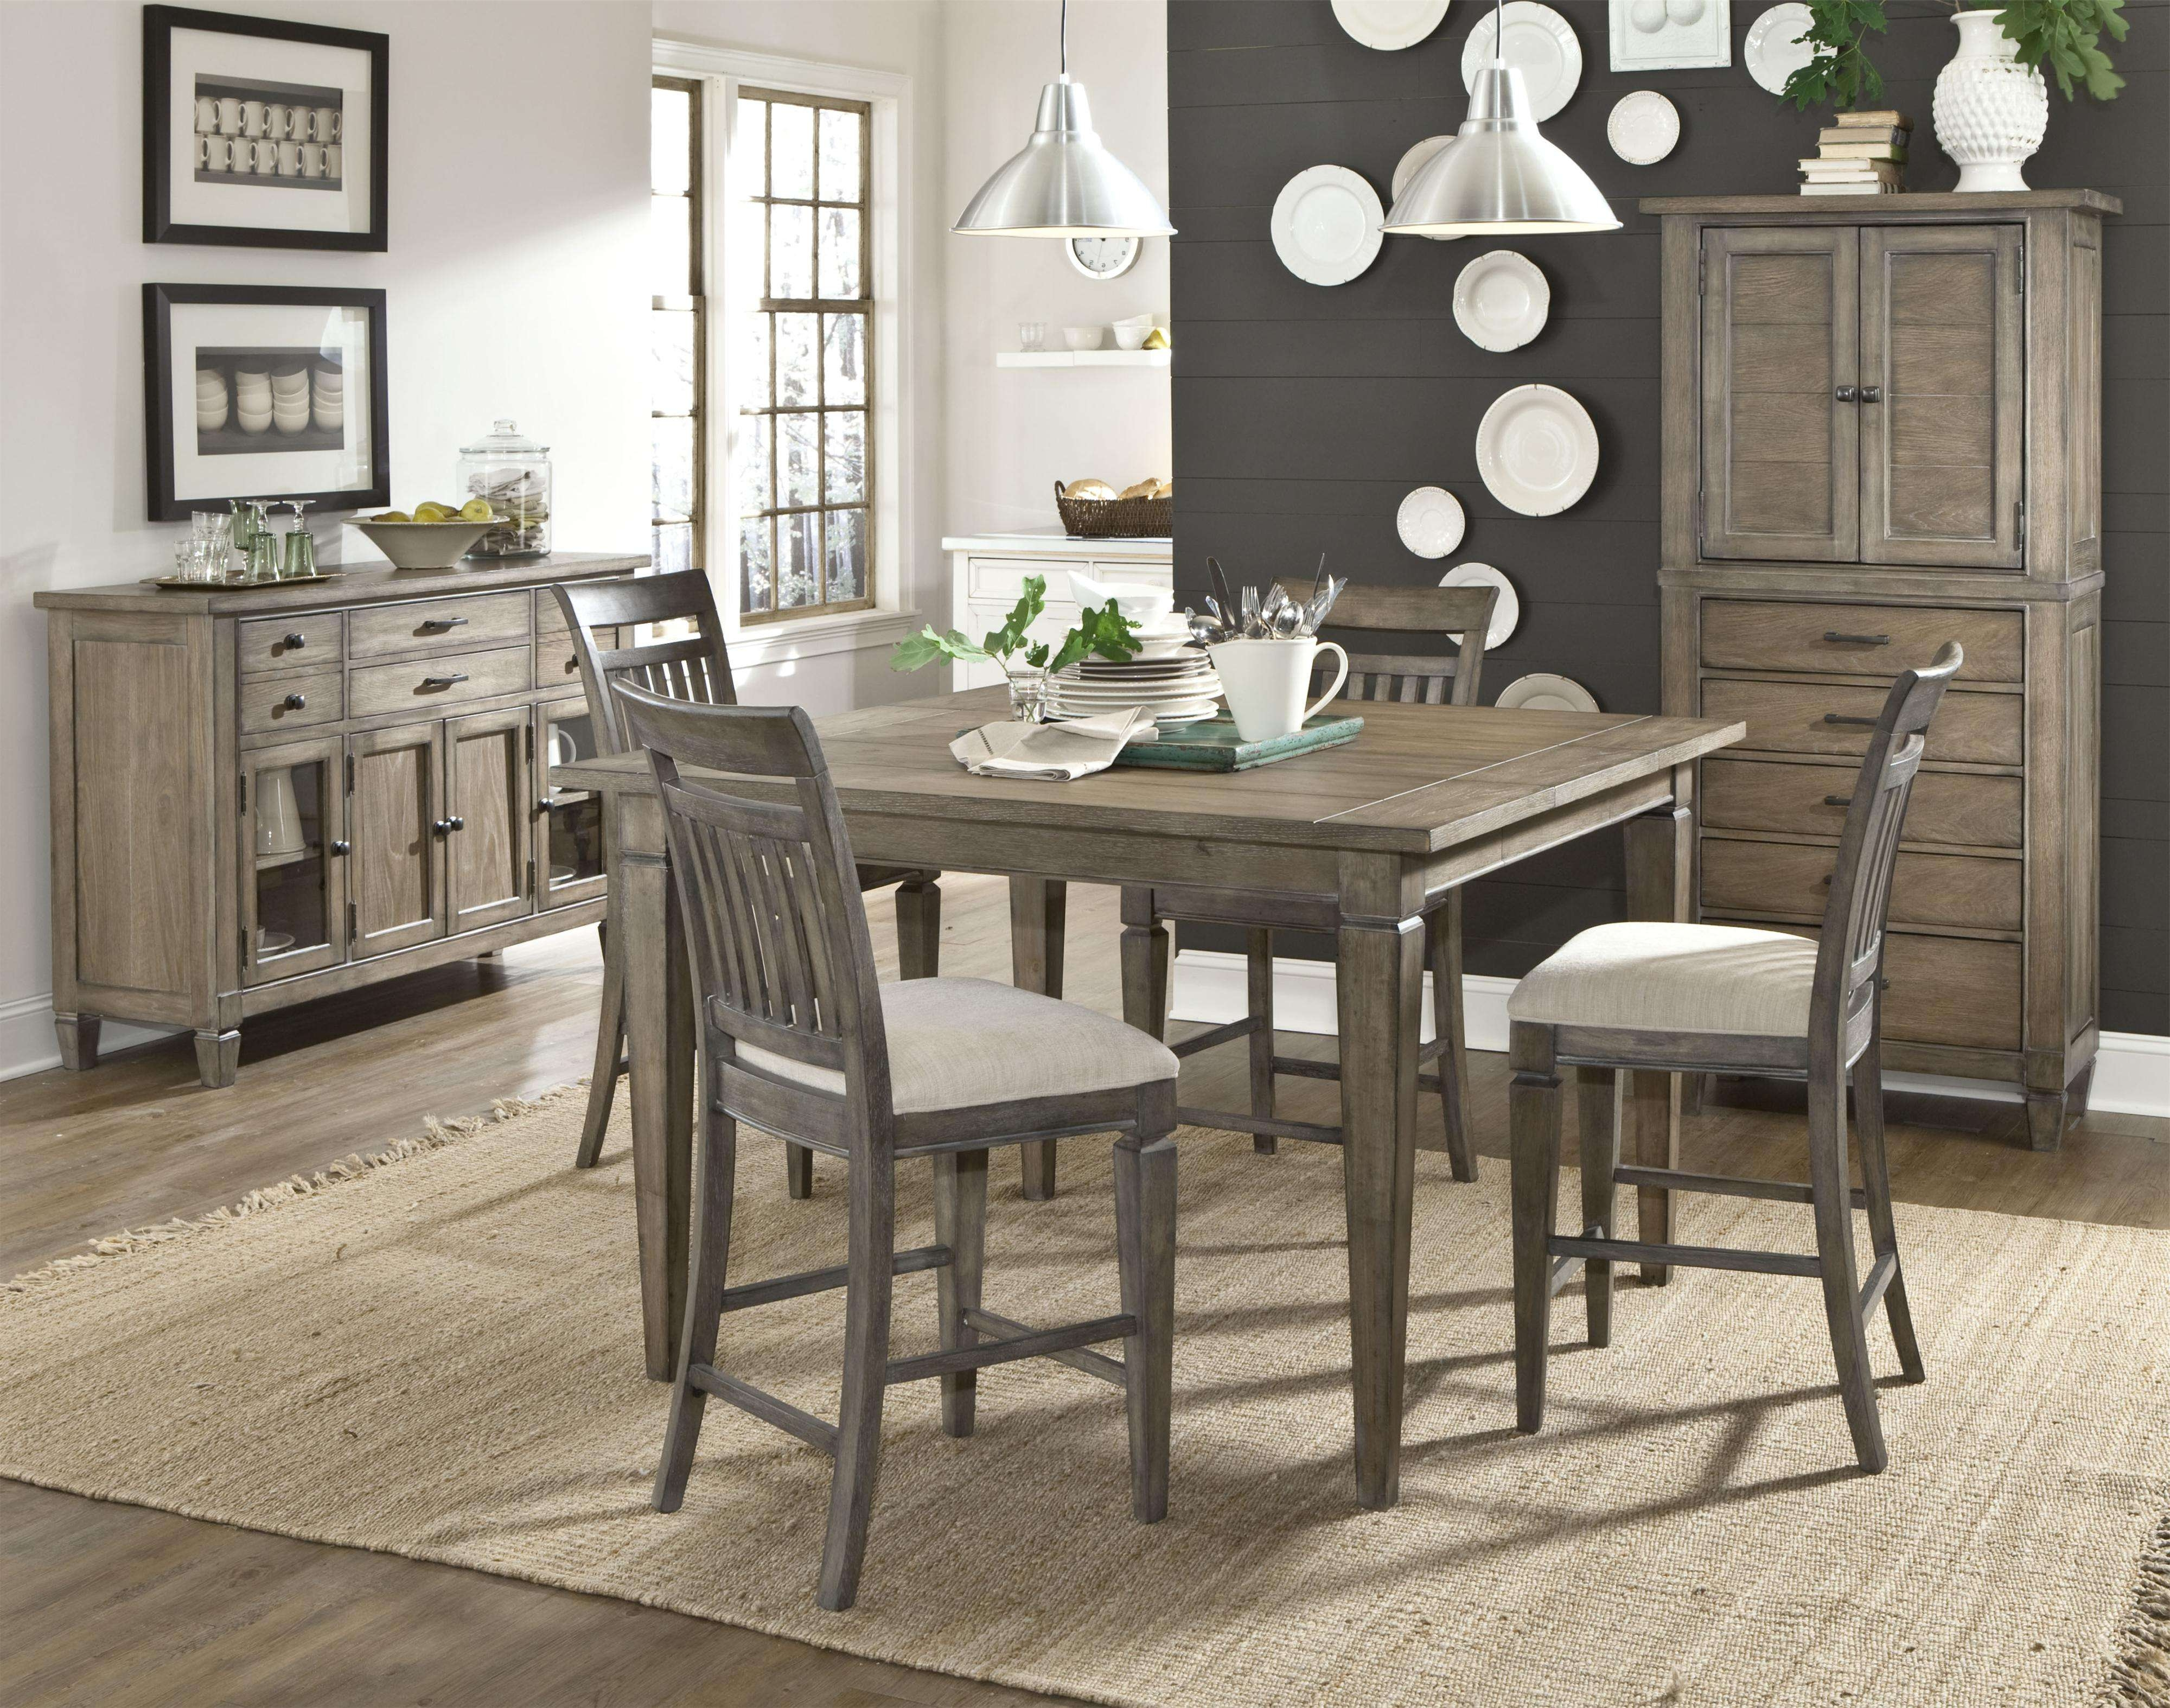 Peachy Dining Room Set Sideboard | Home Inspired 2018 Pertaining To Dining Room Sets With Sideboards (View 8 of 20)